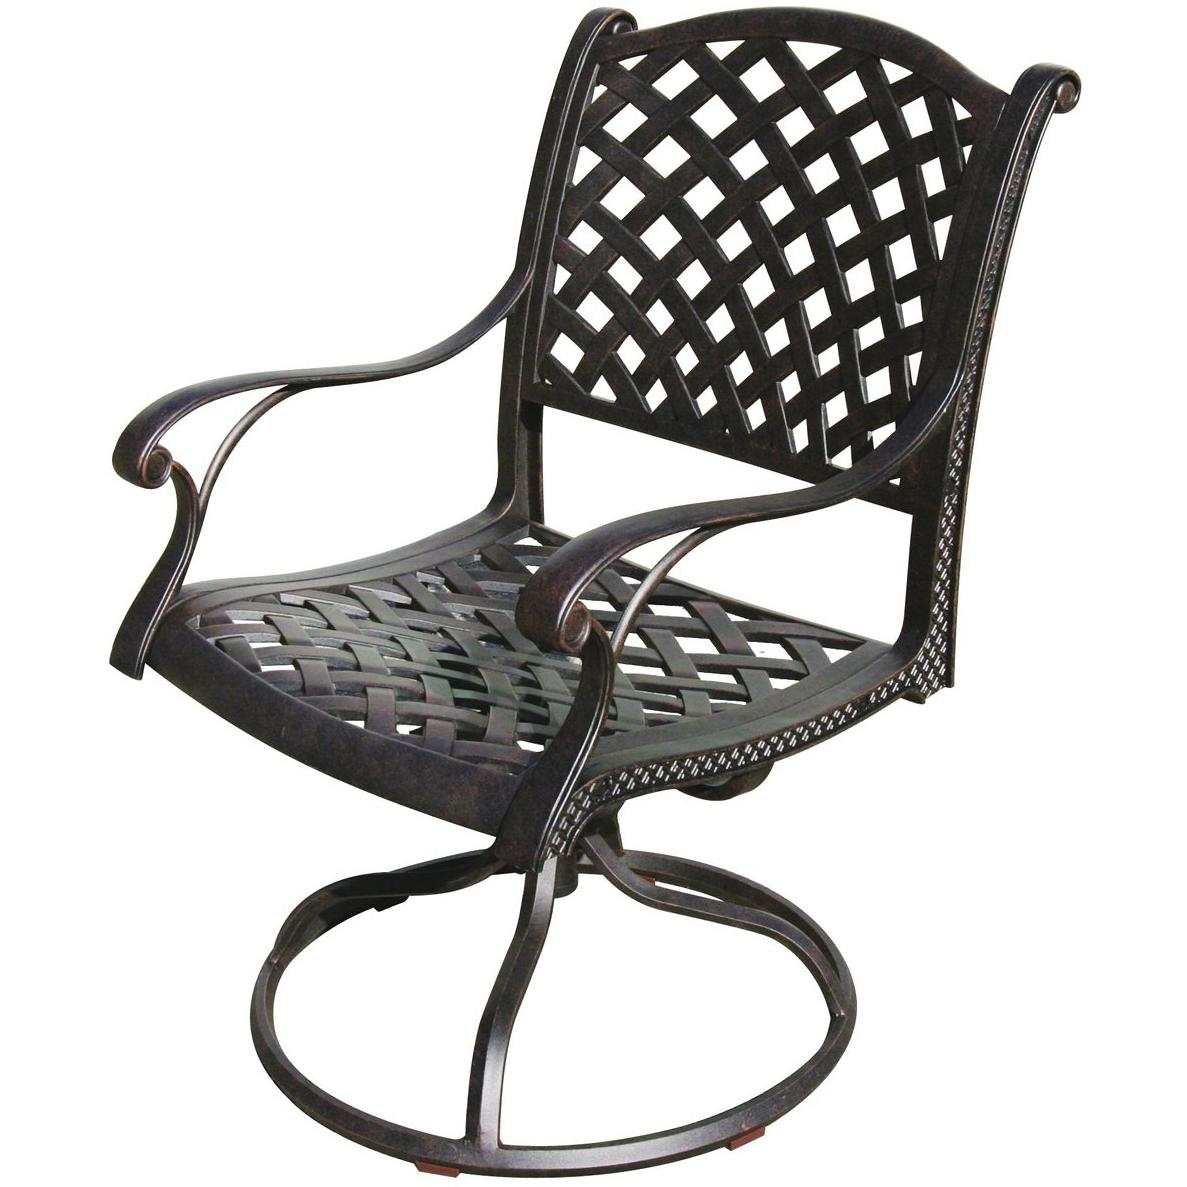 Darlee Nassau Cast Aluminum Outdoor Patio Swivel Rocker Chair With Cushion - Antique Bronze